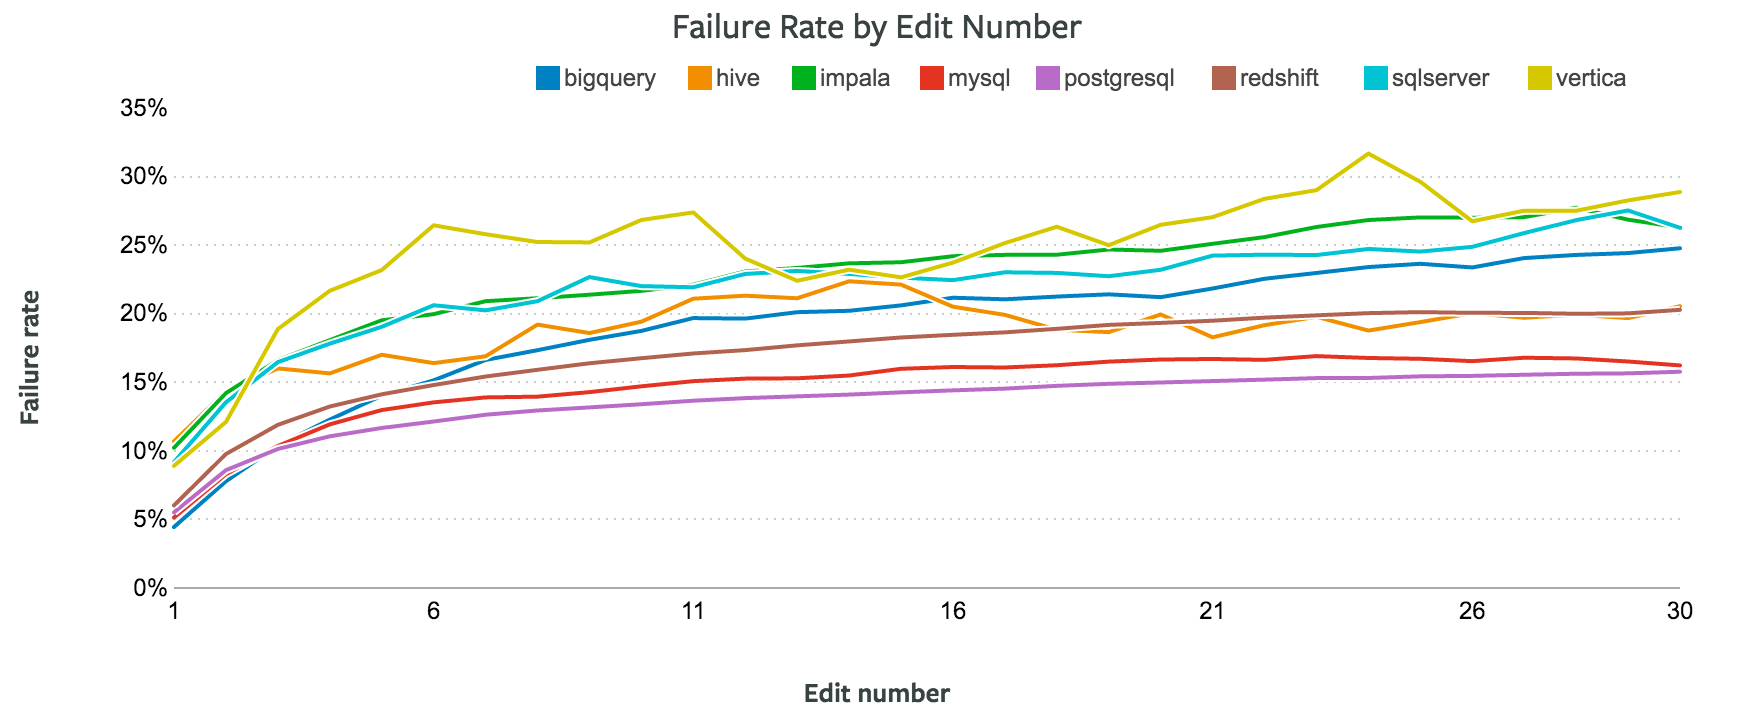 Database Failure Rate by Edit Number